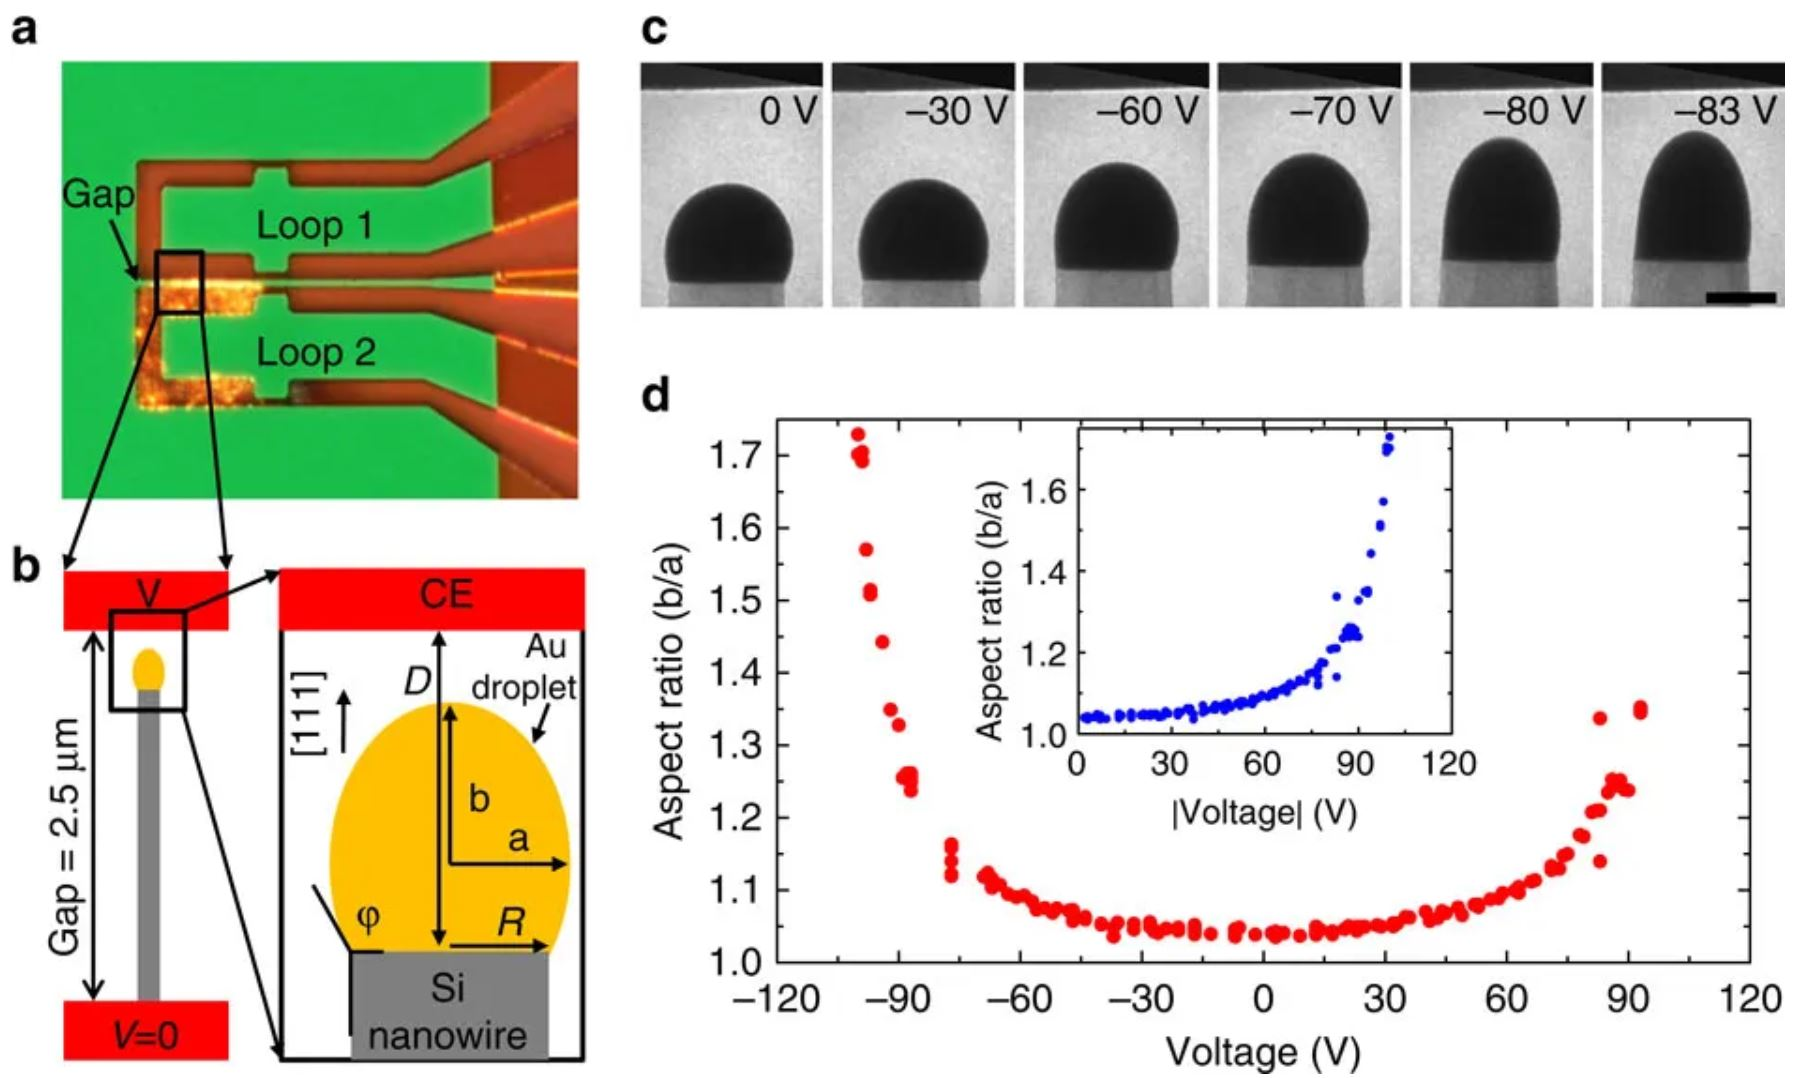 Controlling nanowire growth through electric field-induced deformation of the catalyst droplet